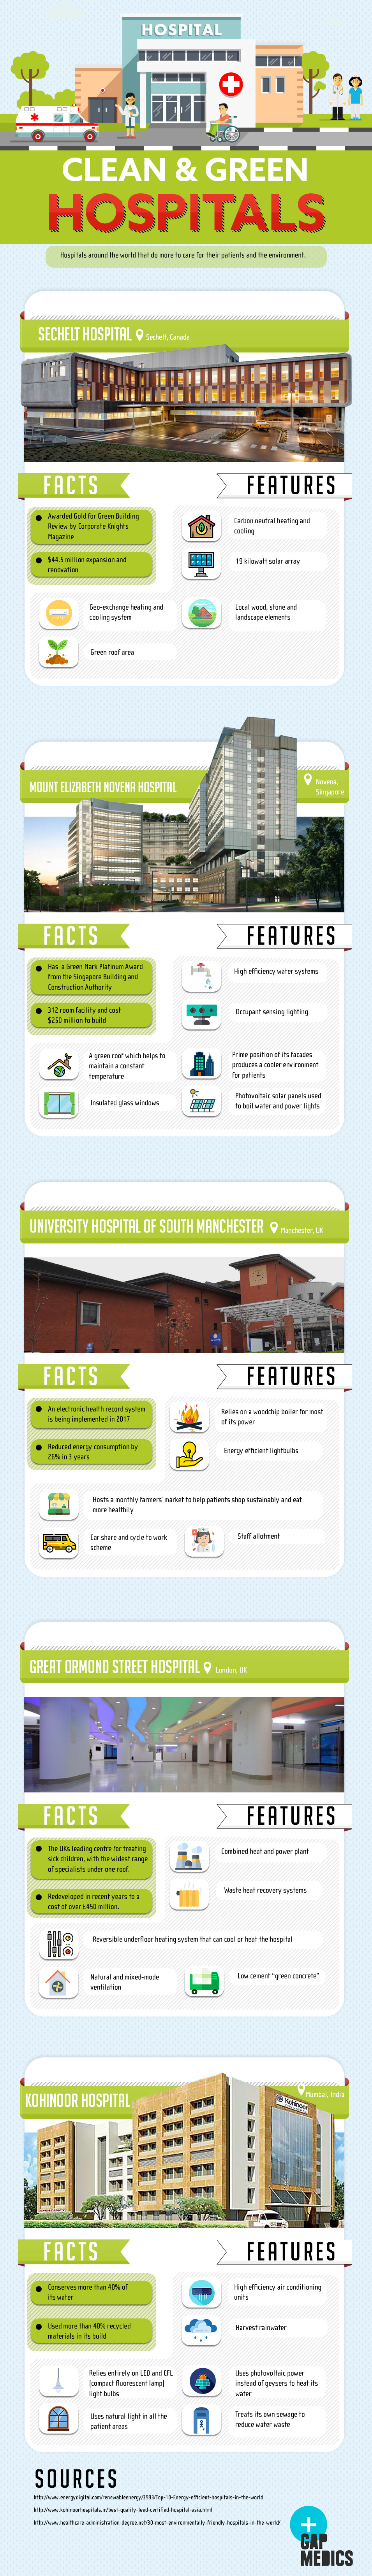 Clean and Green Hospitals [Infographic]   ecogreenlove